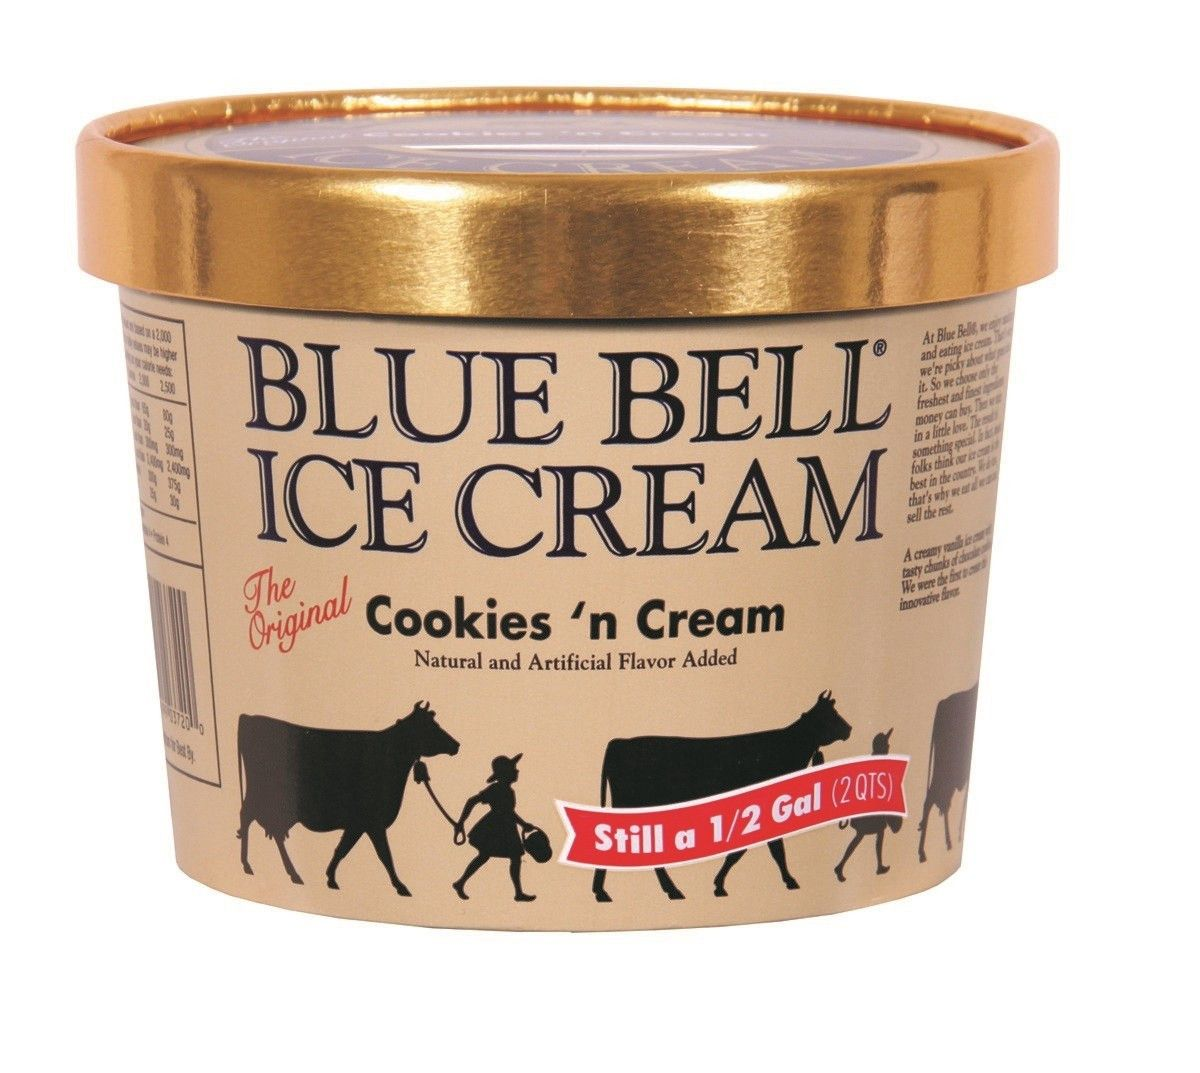 Image Result For Blue Bell Ice Cream Cookies And Cream